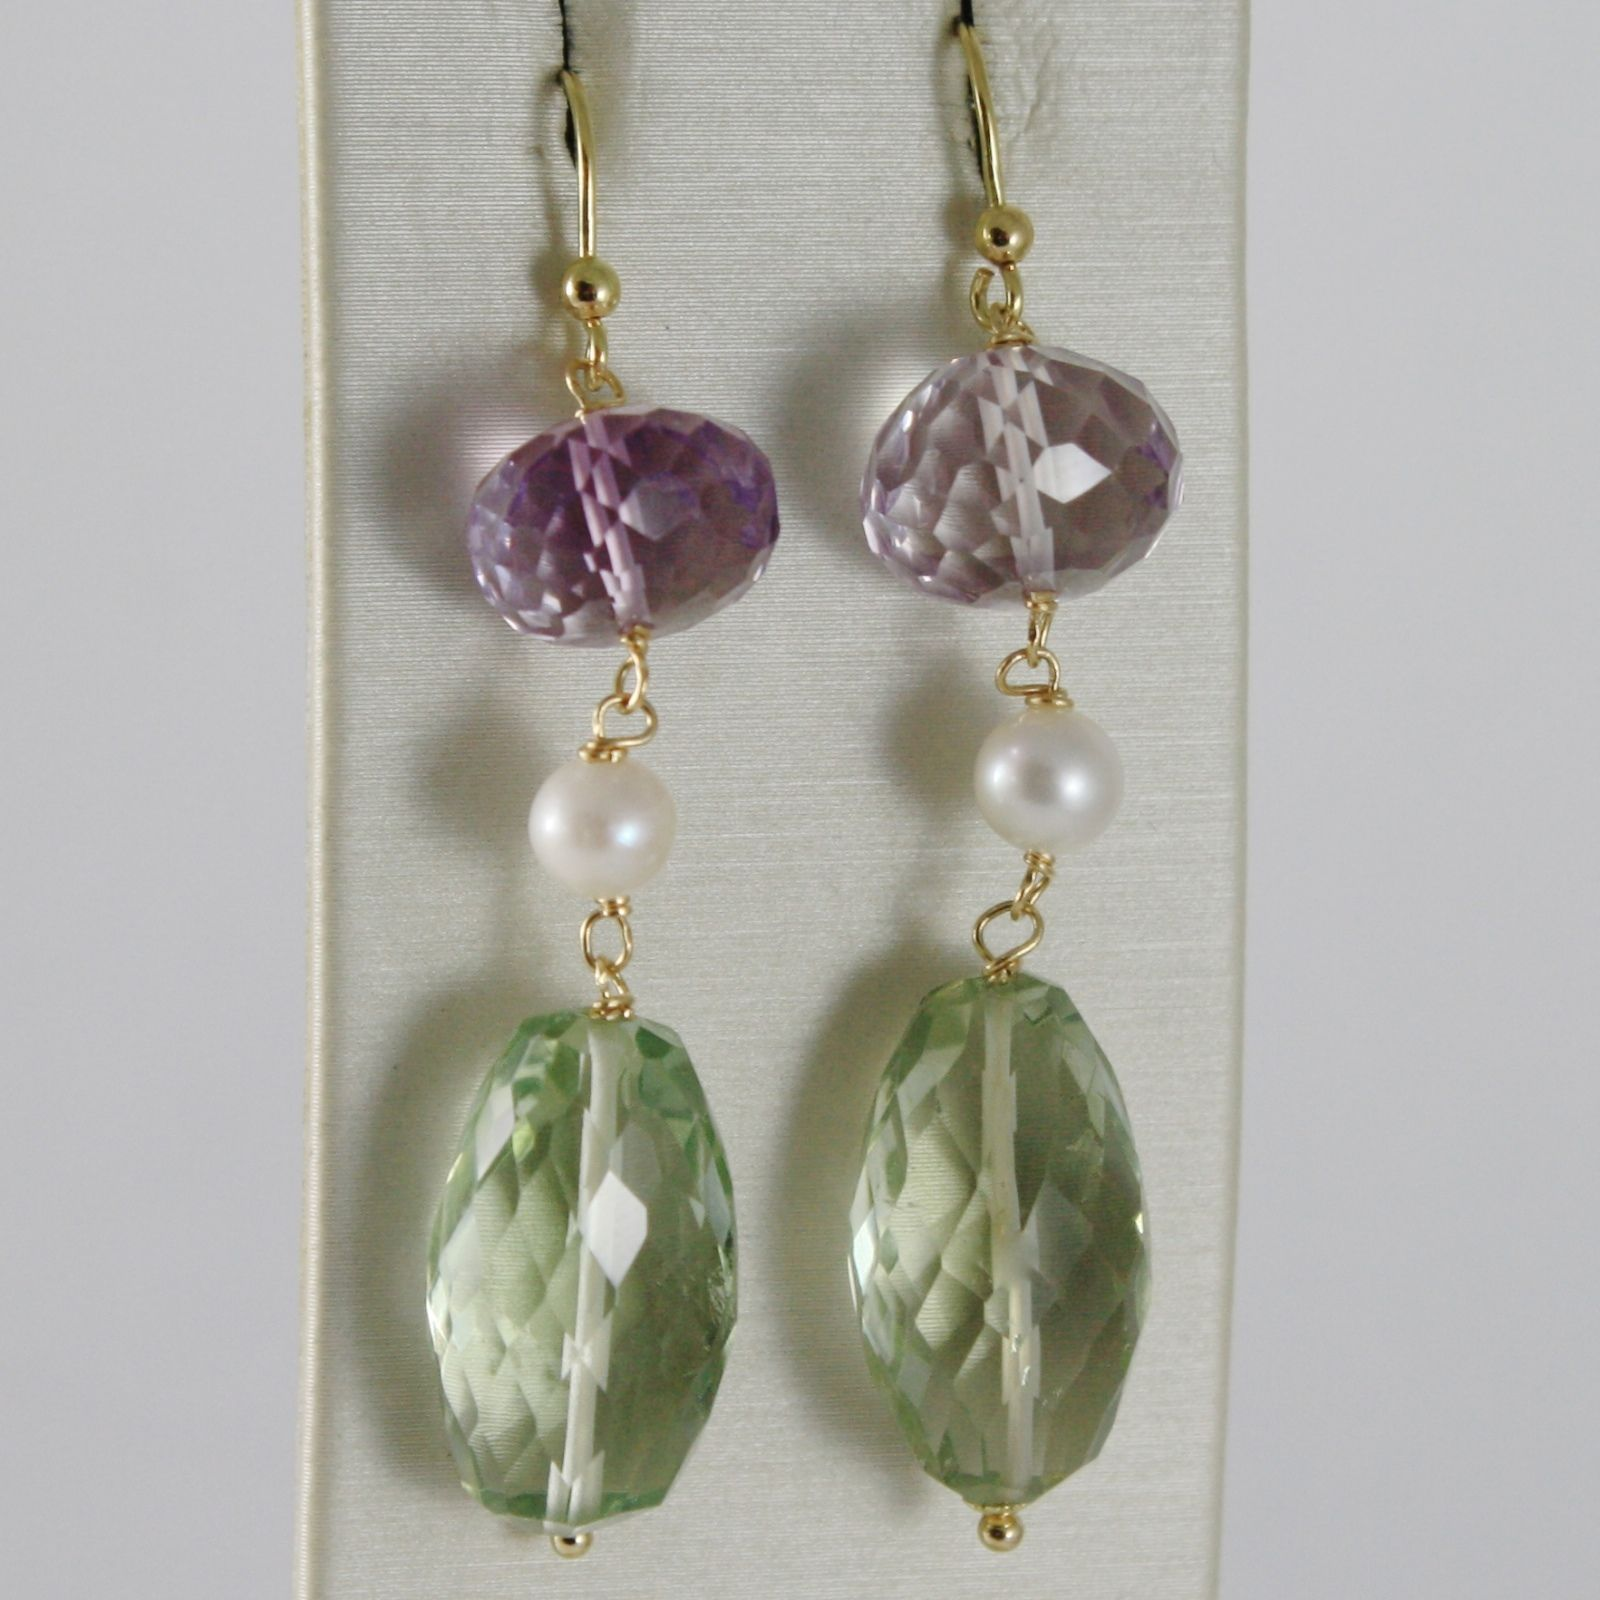 SOLID 18K YELLOW GOLD PENDANT EARRINGS WITH CUSHION AMETHYST, PRASIOLITE, PEARLS